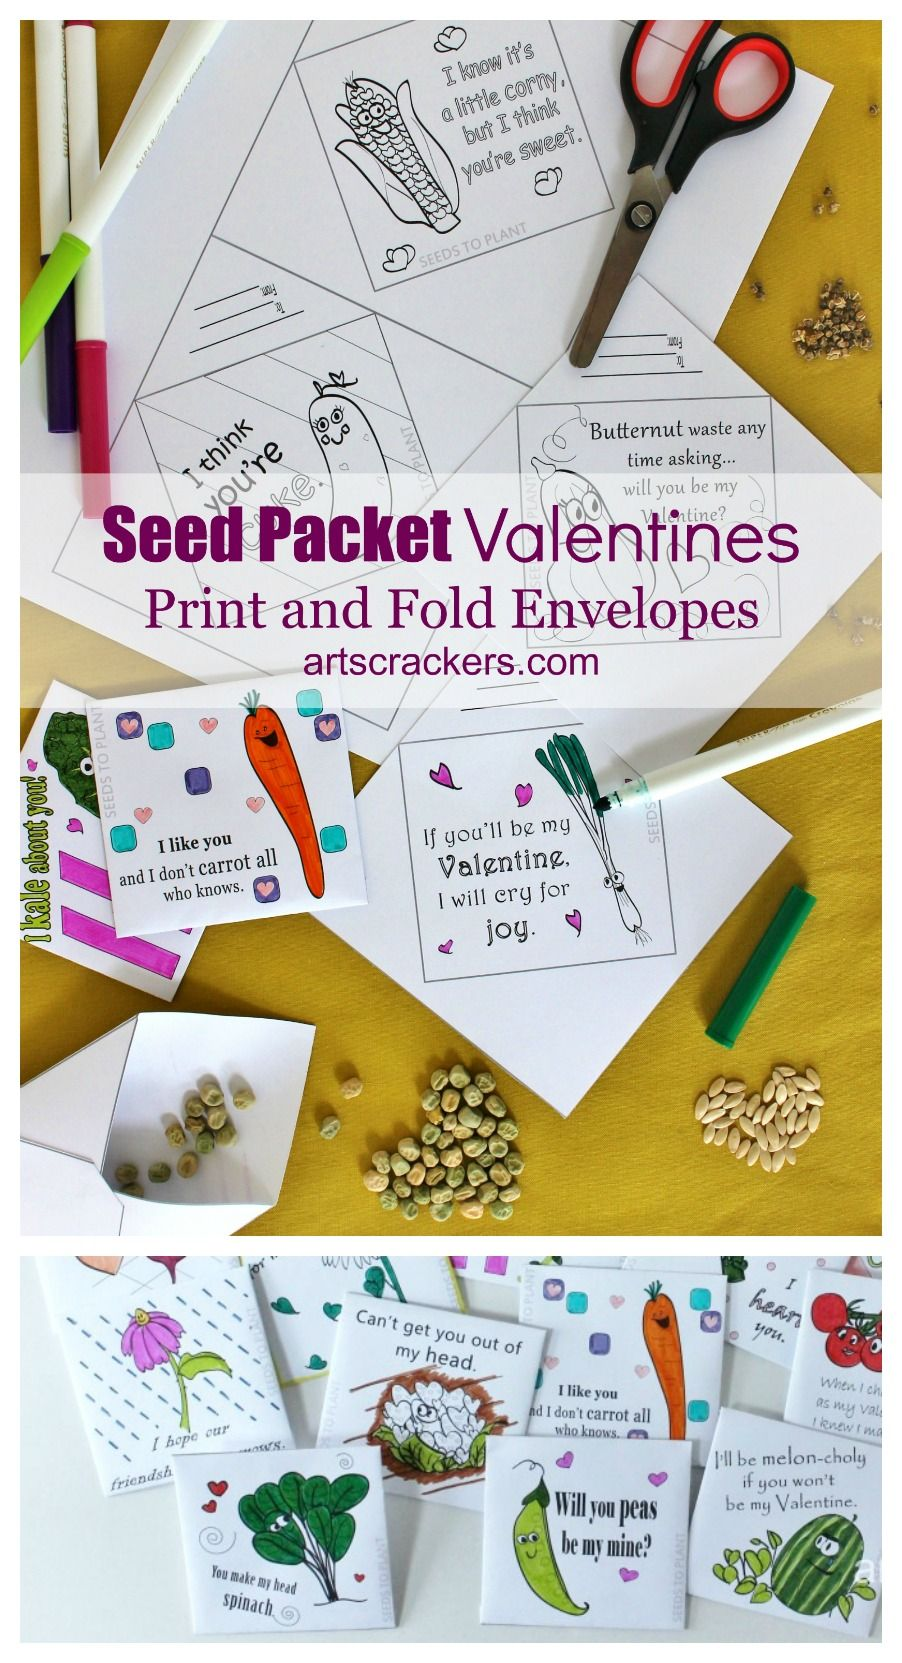 If you are looking for amazing non-candy Valentine's Day ideas, you will love these Seed Packet Valentines. Print free coloring pages or print in color. They're fun and educational Valentines!